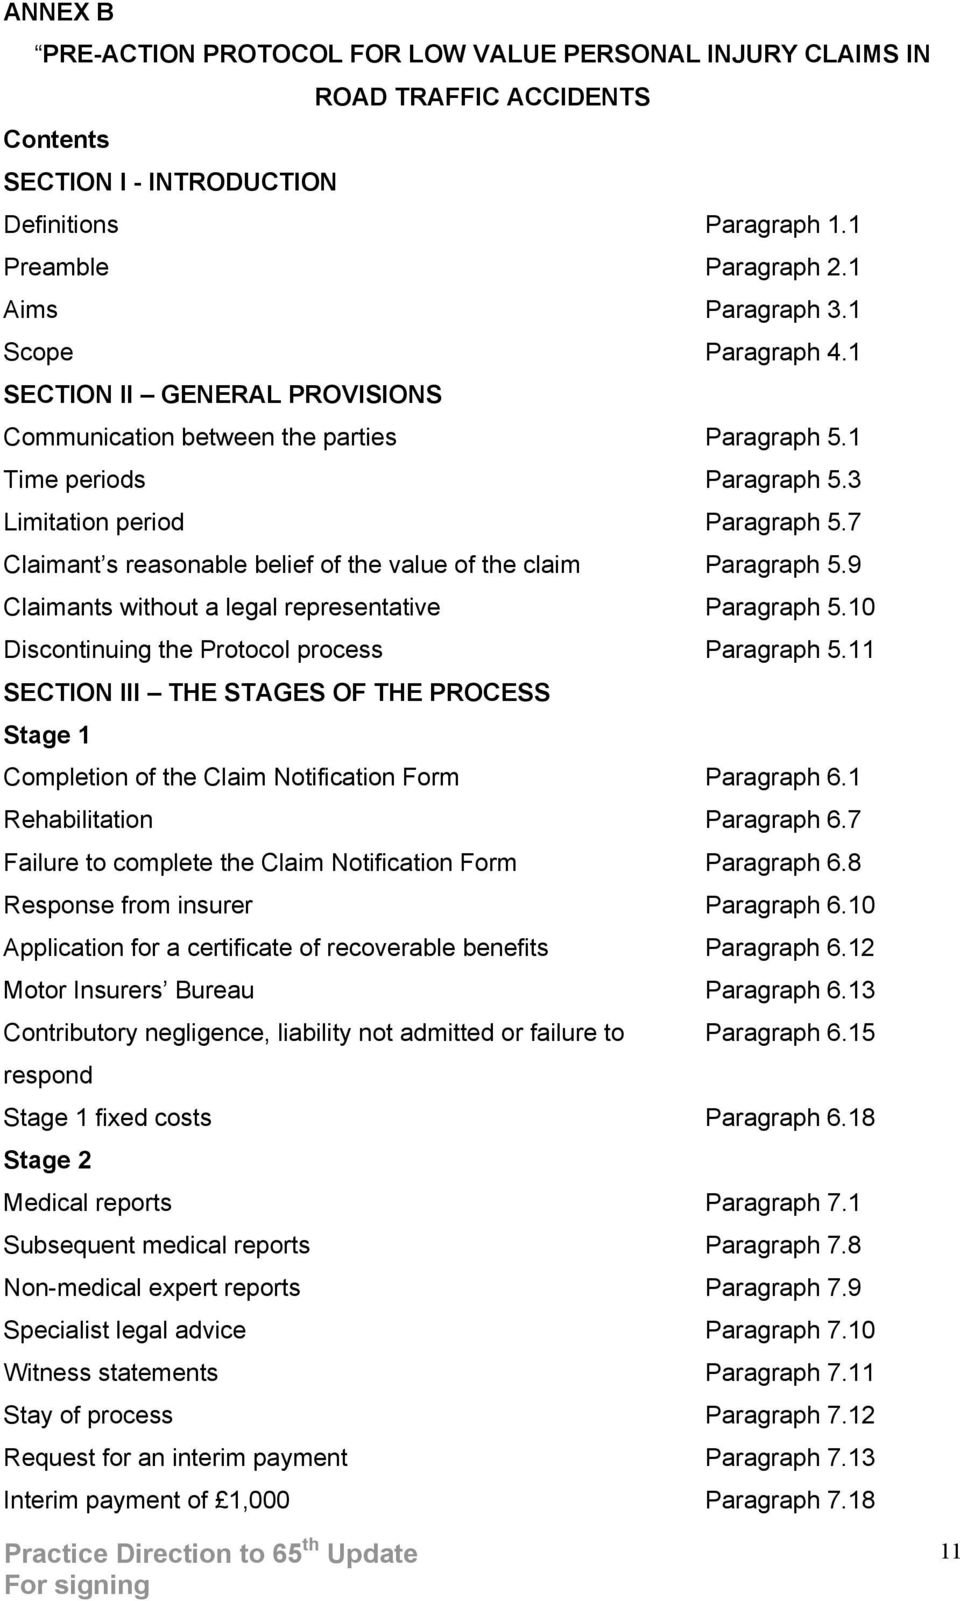 7 Claimant s reasonable belief of the value of the claim Paragraph 5.9 Claimants without a legal representative Paragraph 5.10 Discontinuing the Protocol process Paragraph 5.